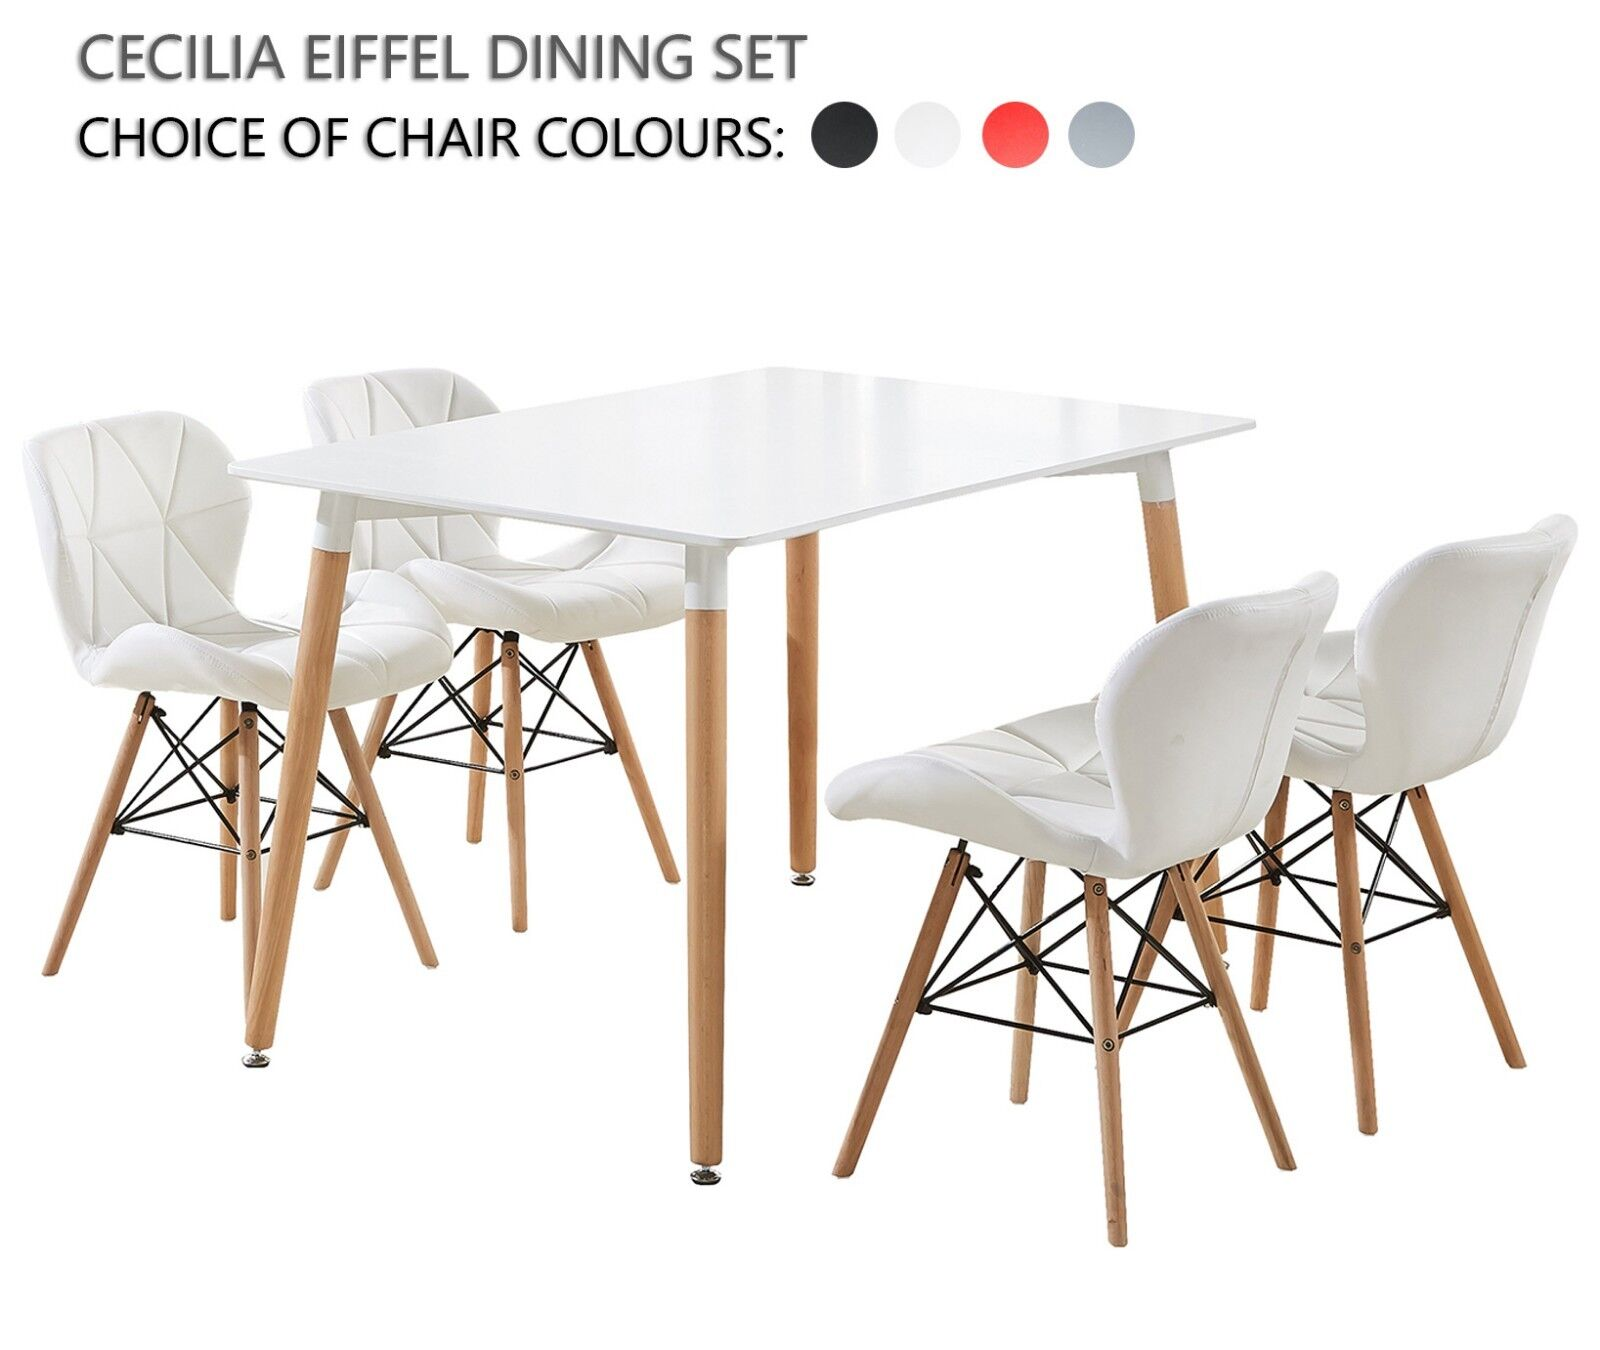 Amazing Details About Cecilia Eiffel Dining Set 4 X Cecilia Padded Chairs White Halo Dining Table Machost Co Dining Chair Design Ideas Machostcouk